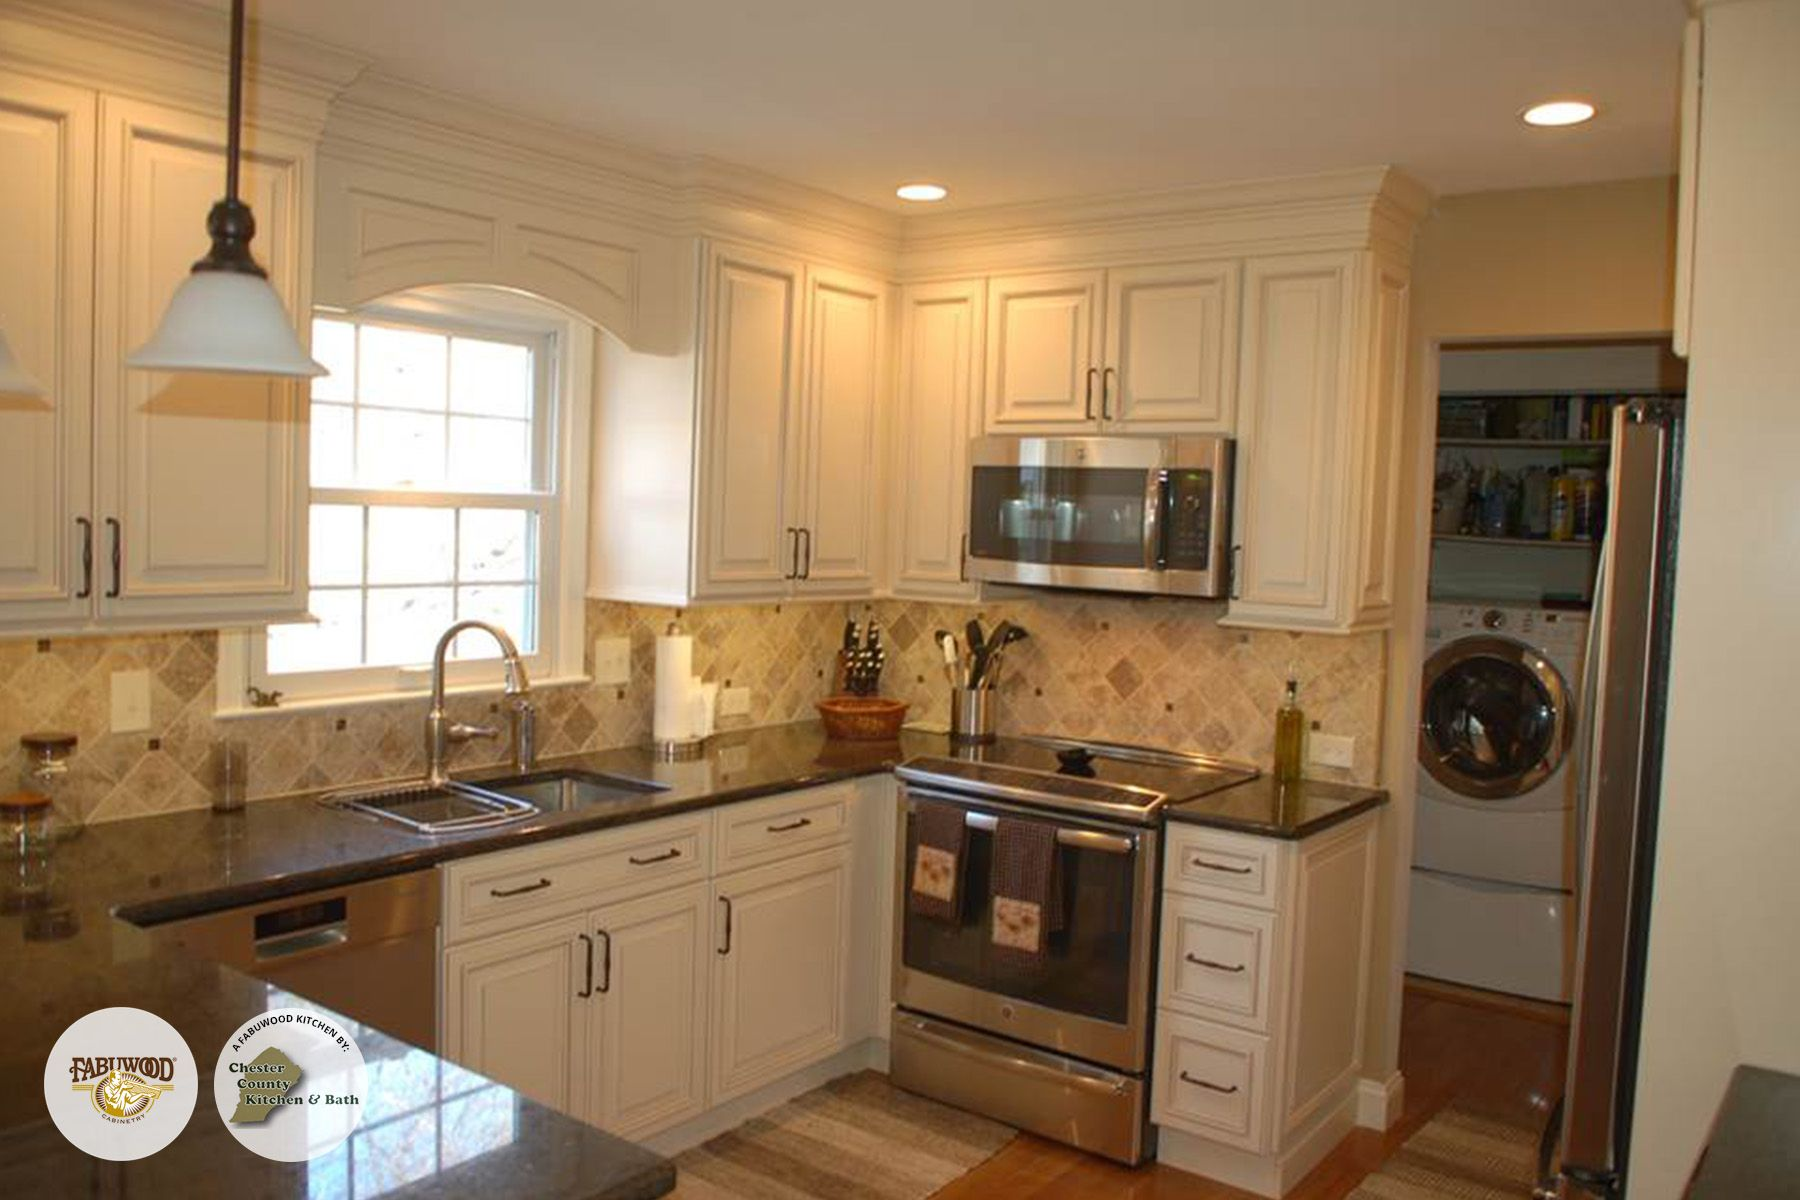 The Classic Wellington Cabinets In Ivory Fabuwood Classic The Classic  Wellington Cabinets In Ivory Fabuwood Classic From Chester County Kitchen  And Bath ...